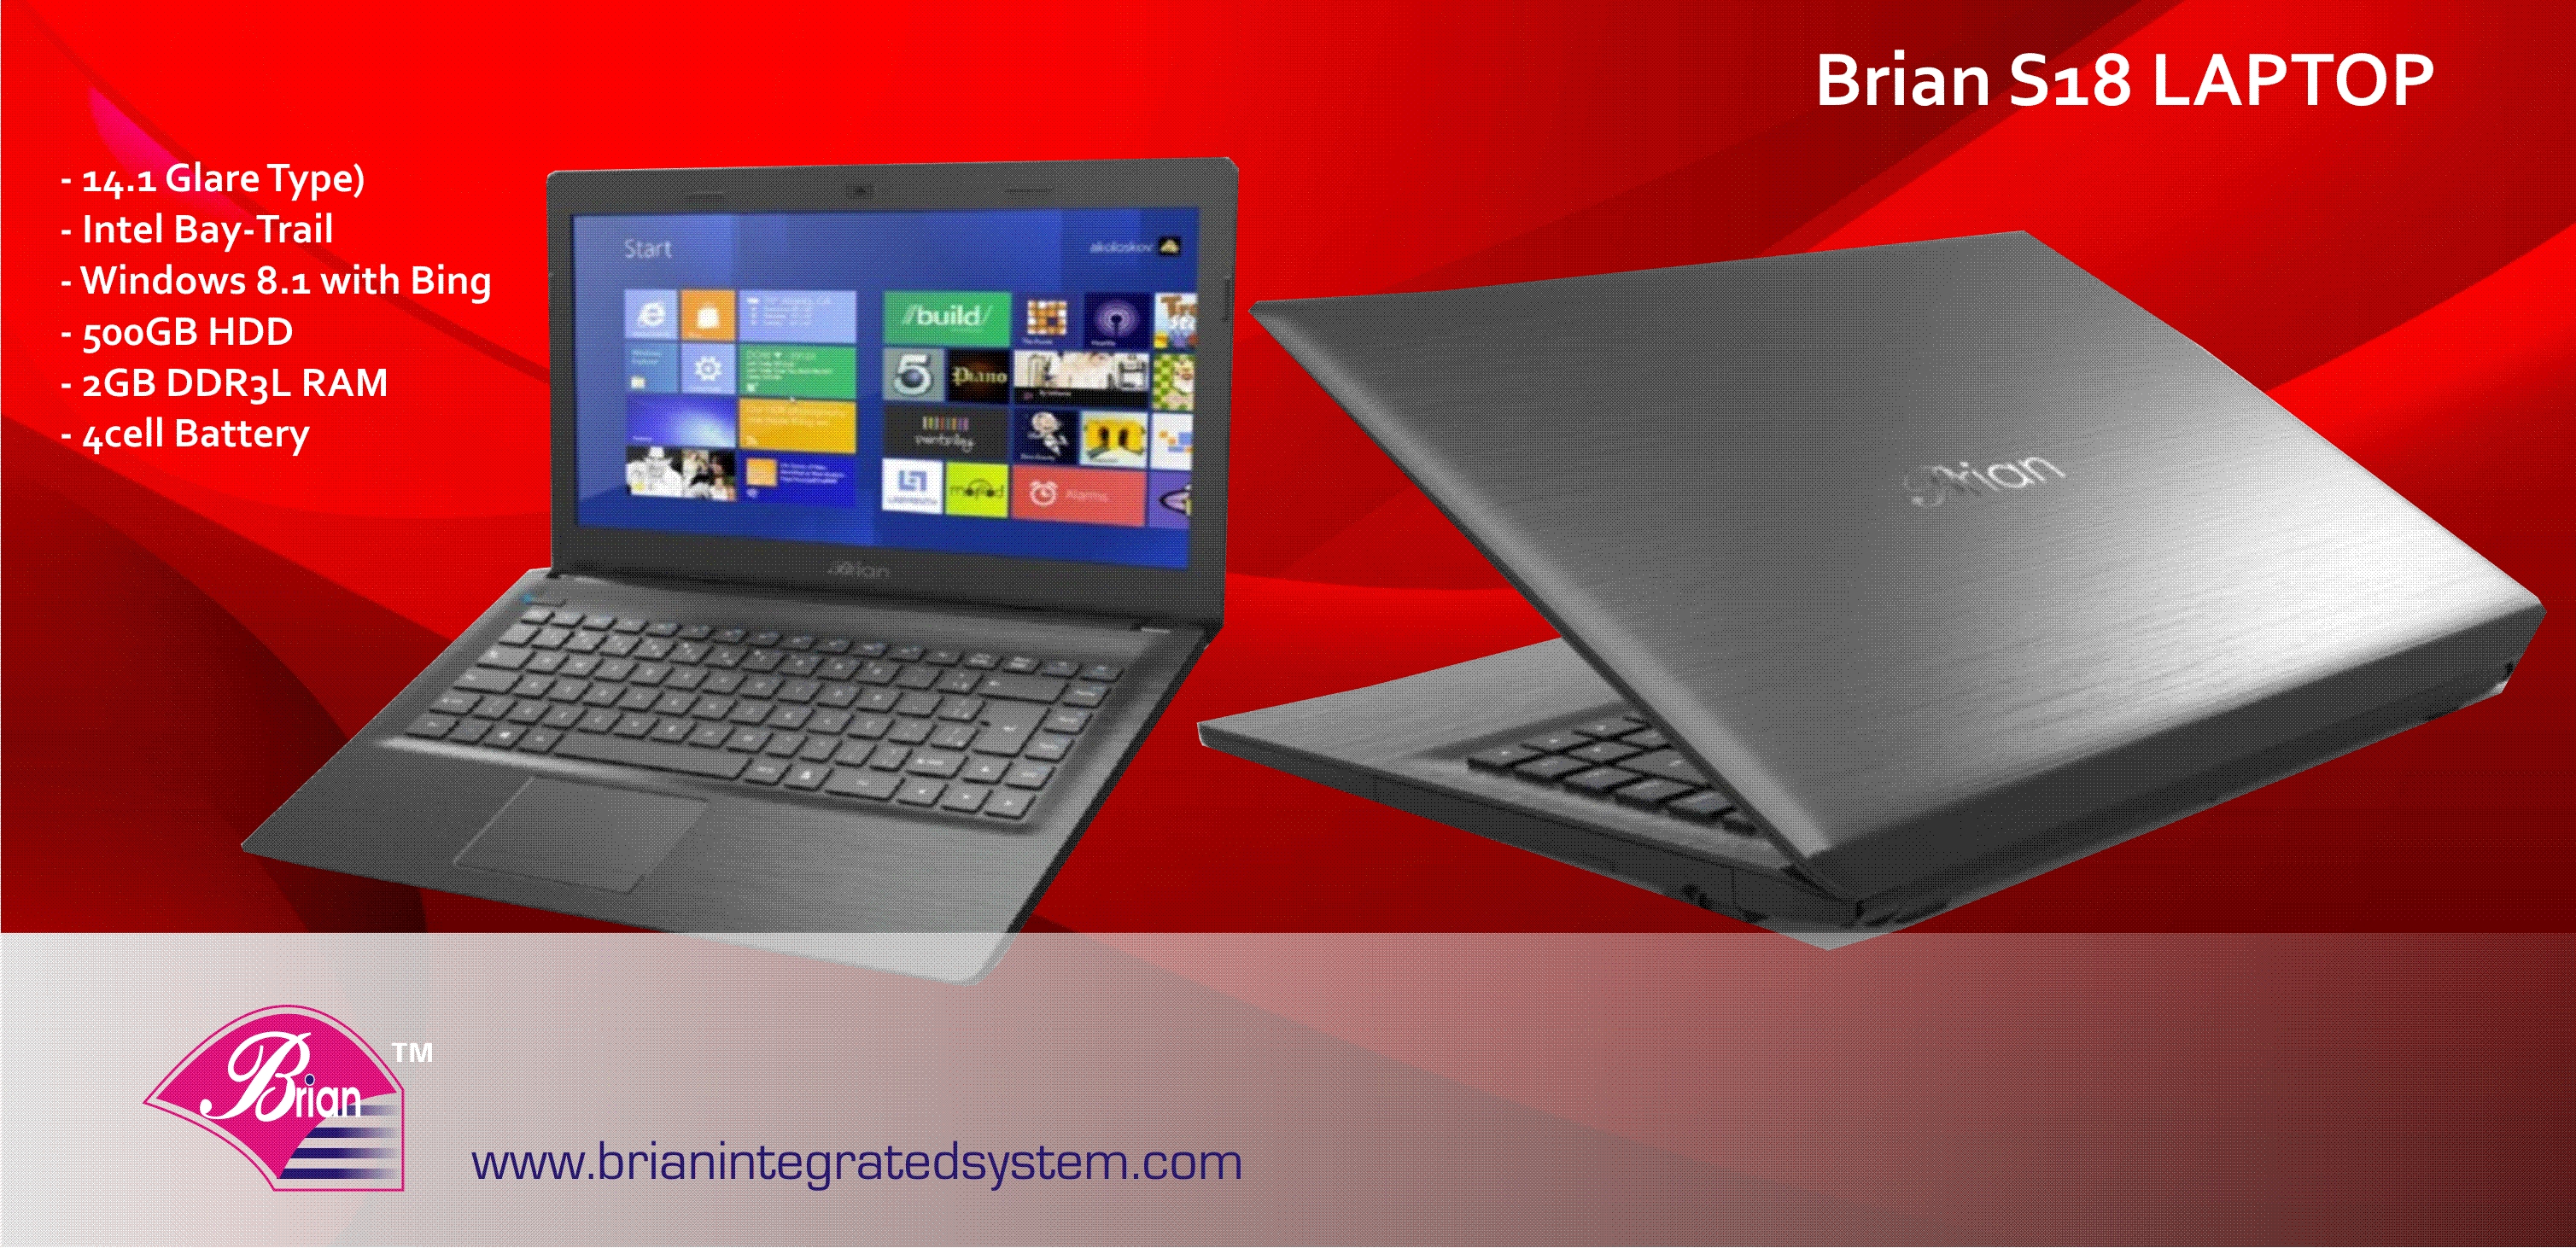 Brian S18 Laptop With Windows 8 1 Bing Microsoft Office 365 Personal 500gb Hdd In Built Memory Card Reader 2gb Ddr3l Usb 2 Hdmi